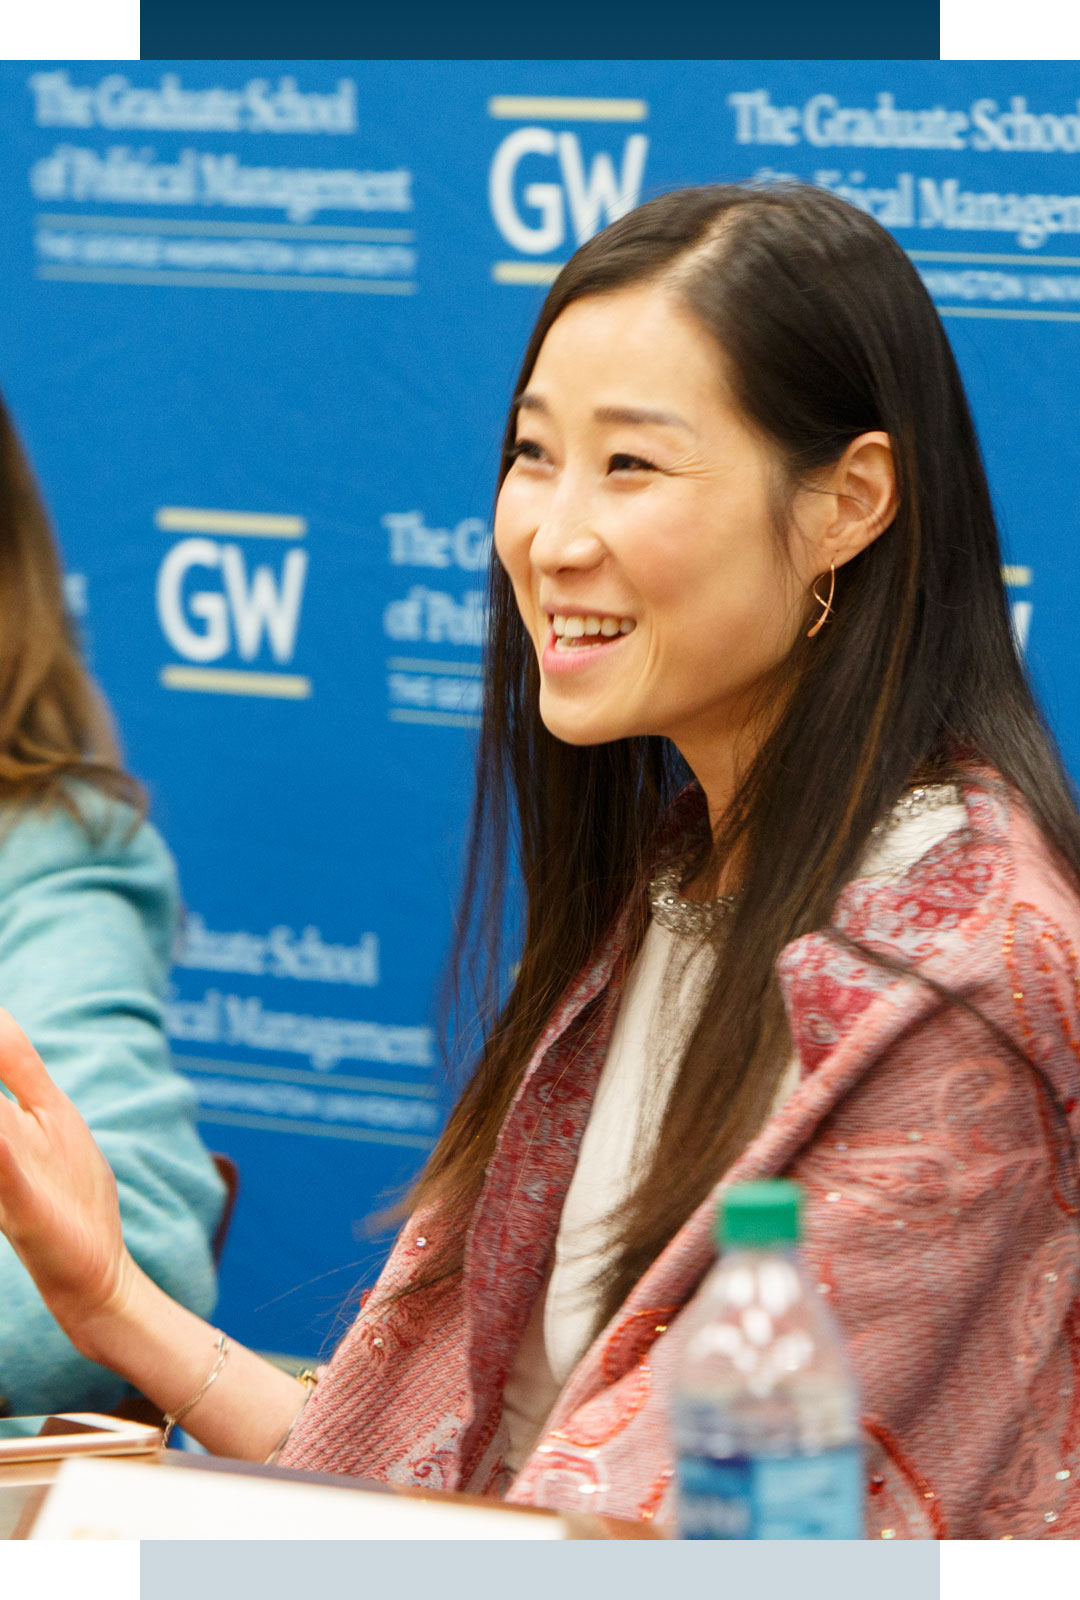 Woman speaking at a table; backdrop has GW logo and words The Graduate School of Political Management